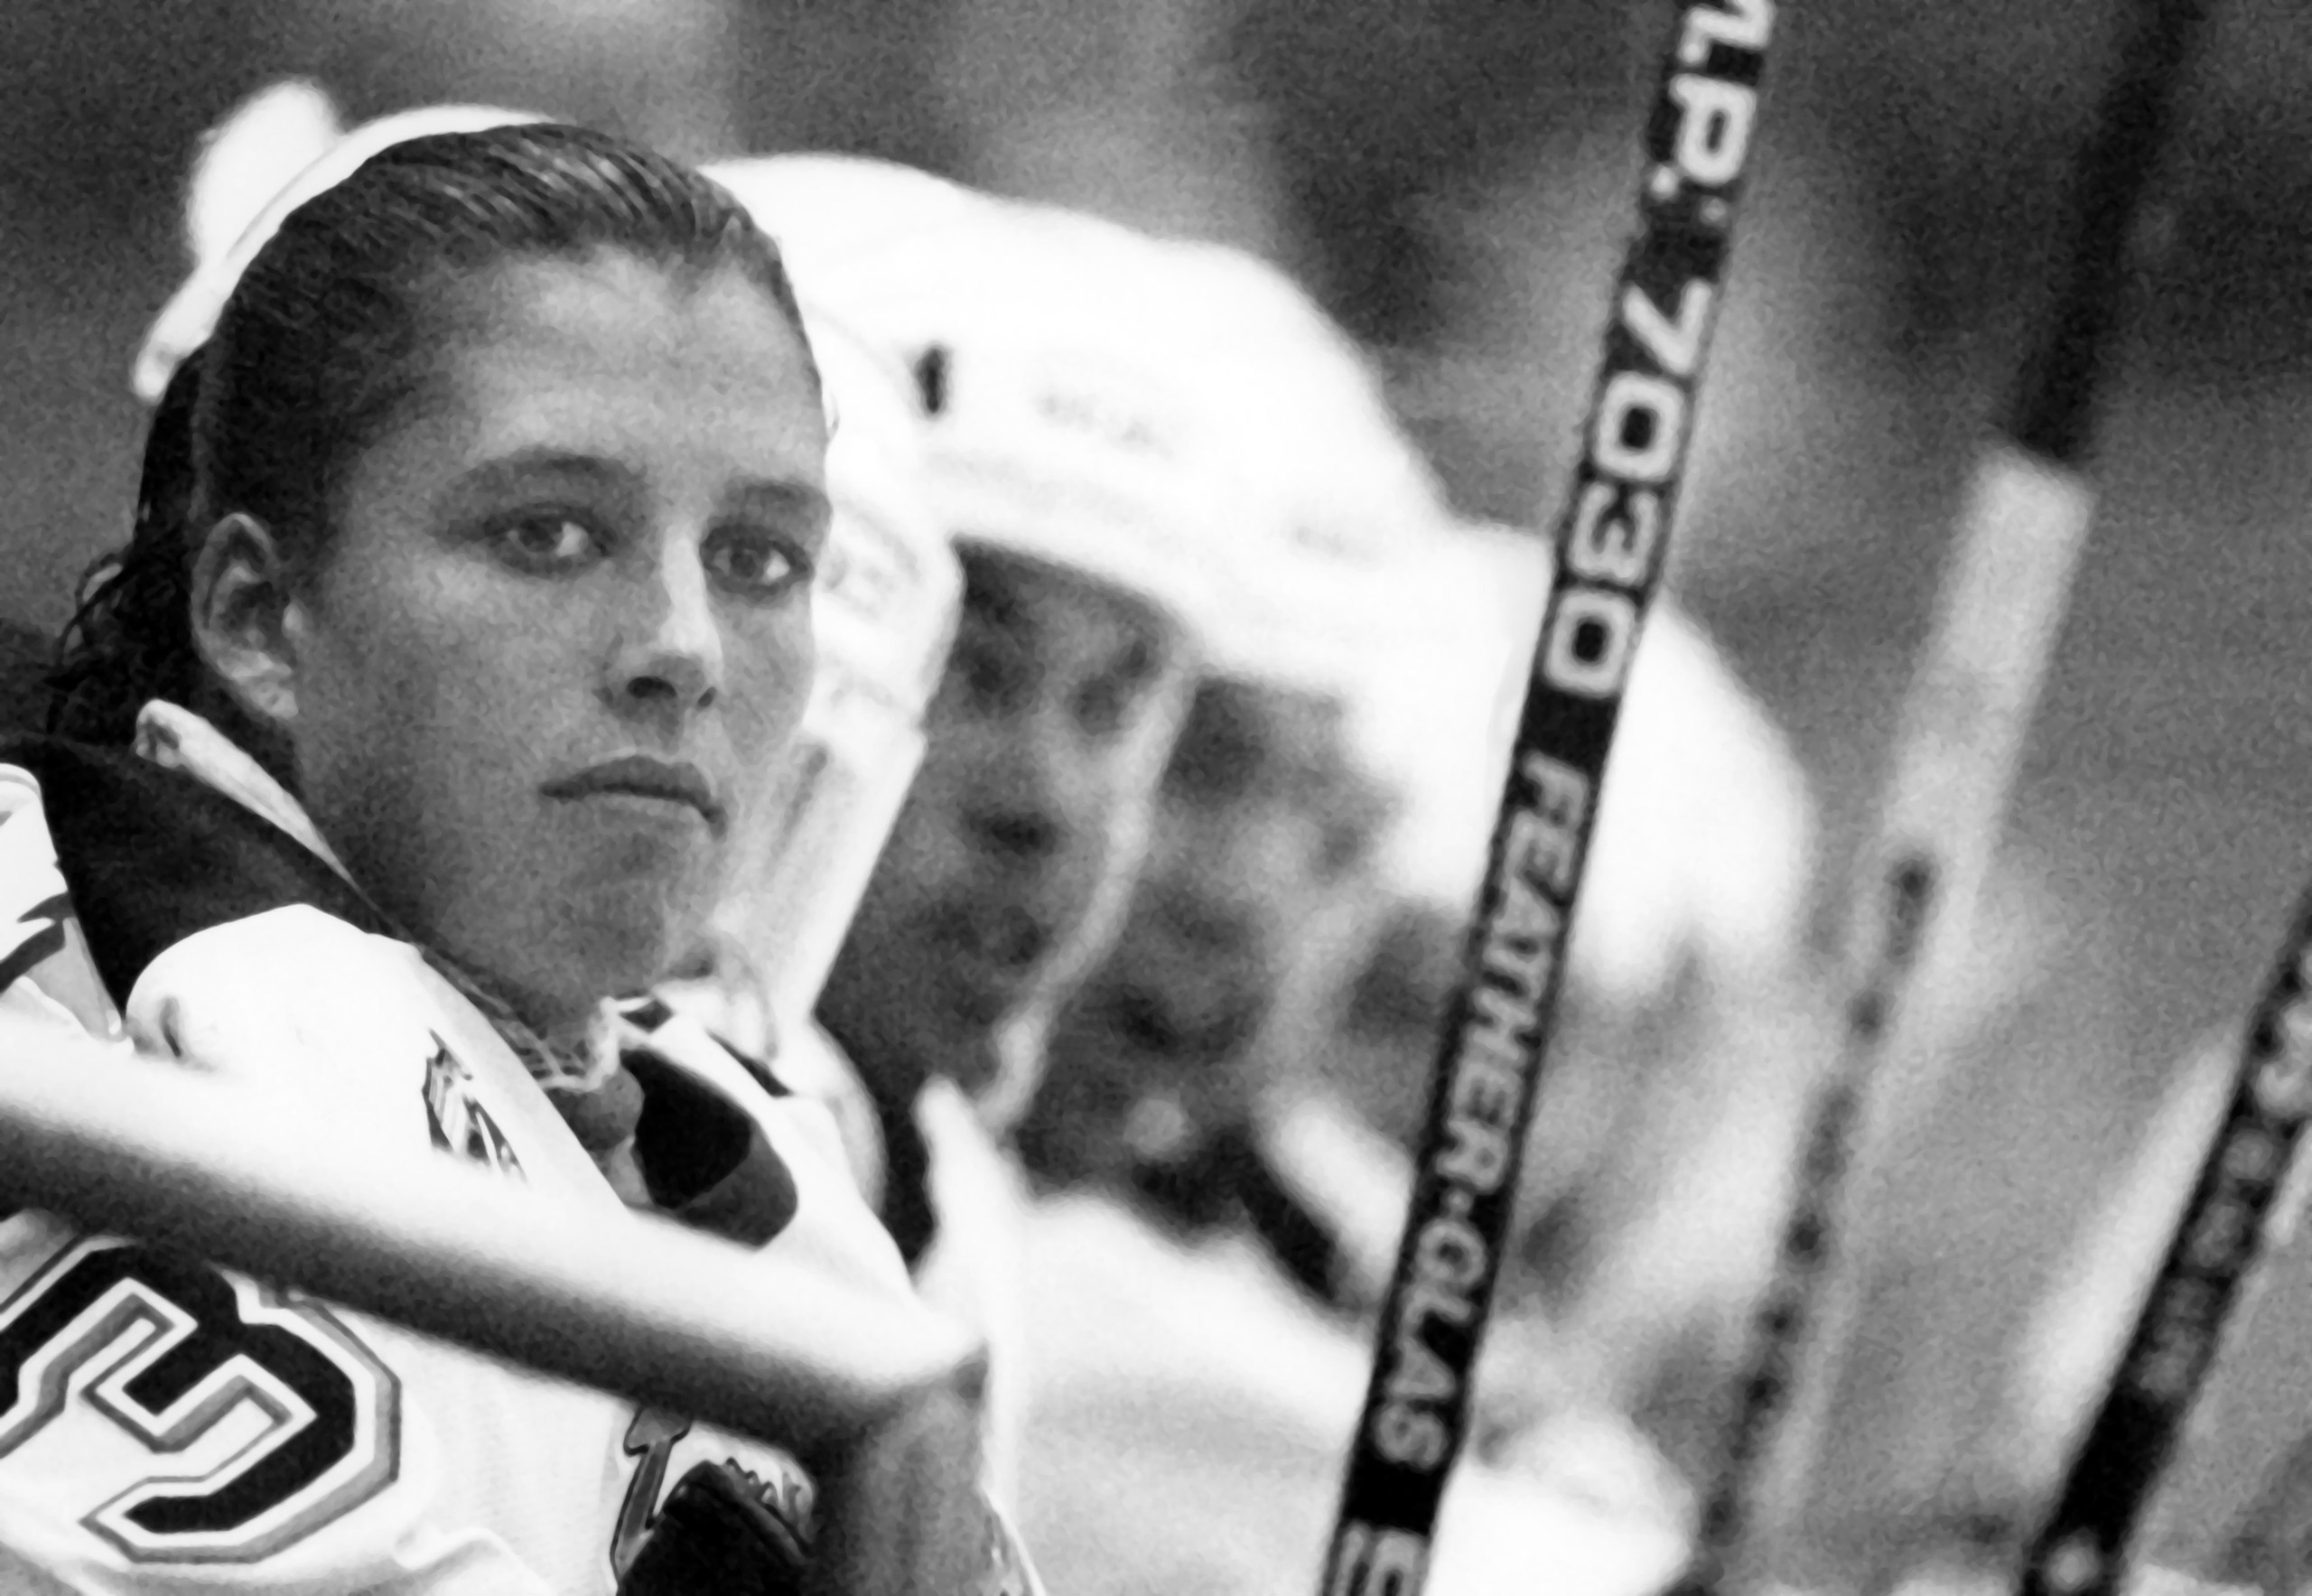 "Goalie Manon Rheaume of the Tampa Bay Lightning sits on the bench during an NHL preseason game against the St. Louis Blues on Sept. 23, 1992, at the Expo Hall in Tampa, Fla. Rheaume was the first woman to play in the NHL, though she didn't appear in the regular season. After a 1992 game, TIME <a href=""http://time.com/vault/issue/1992-10-05/page/26"">noted</a> that a sportswriter had just one question for her: ""'Did you break a nail?''"